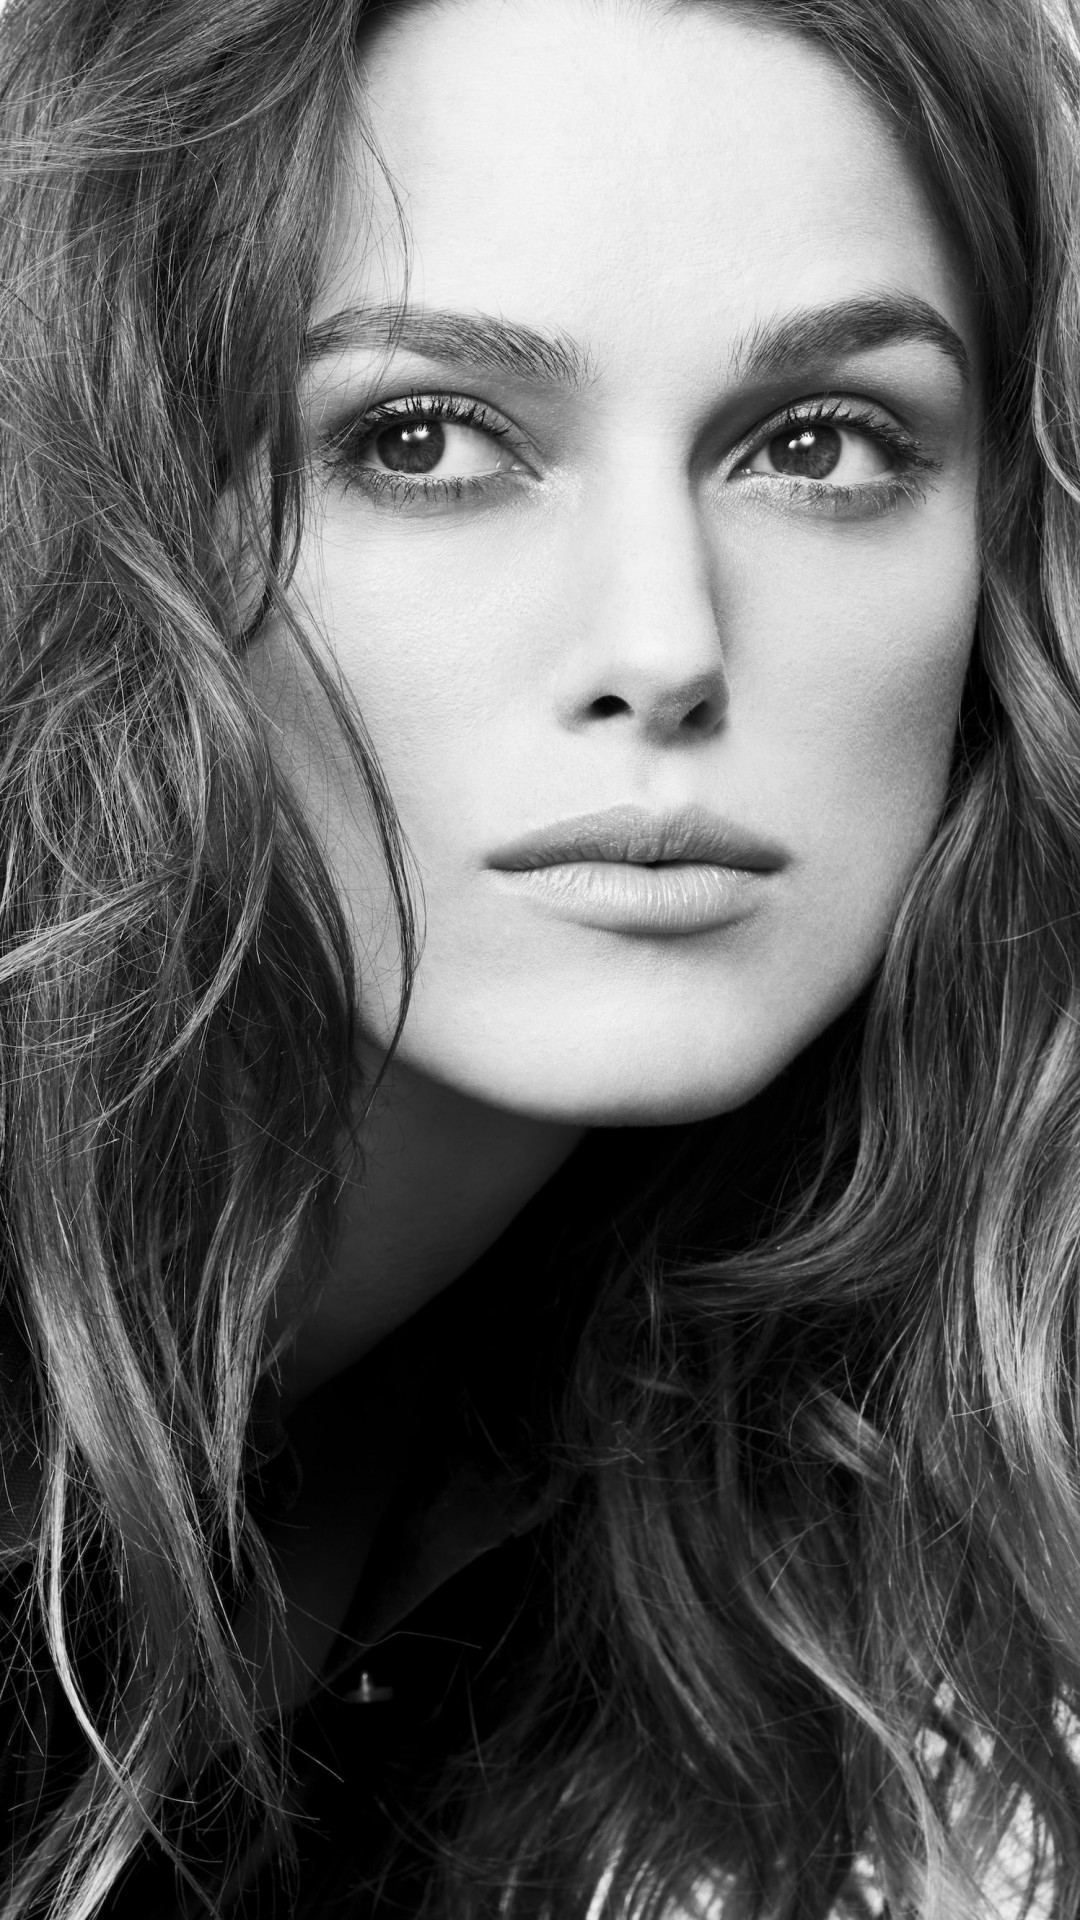 Keira Knightley in Black & White Wallpaper for HTC One